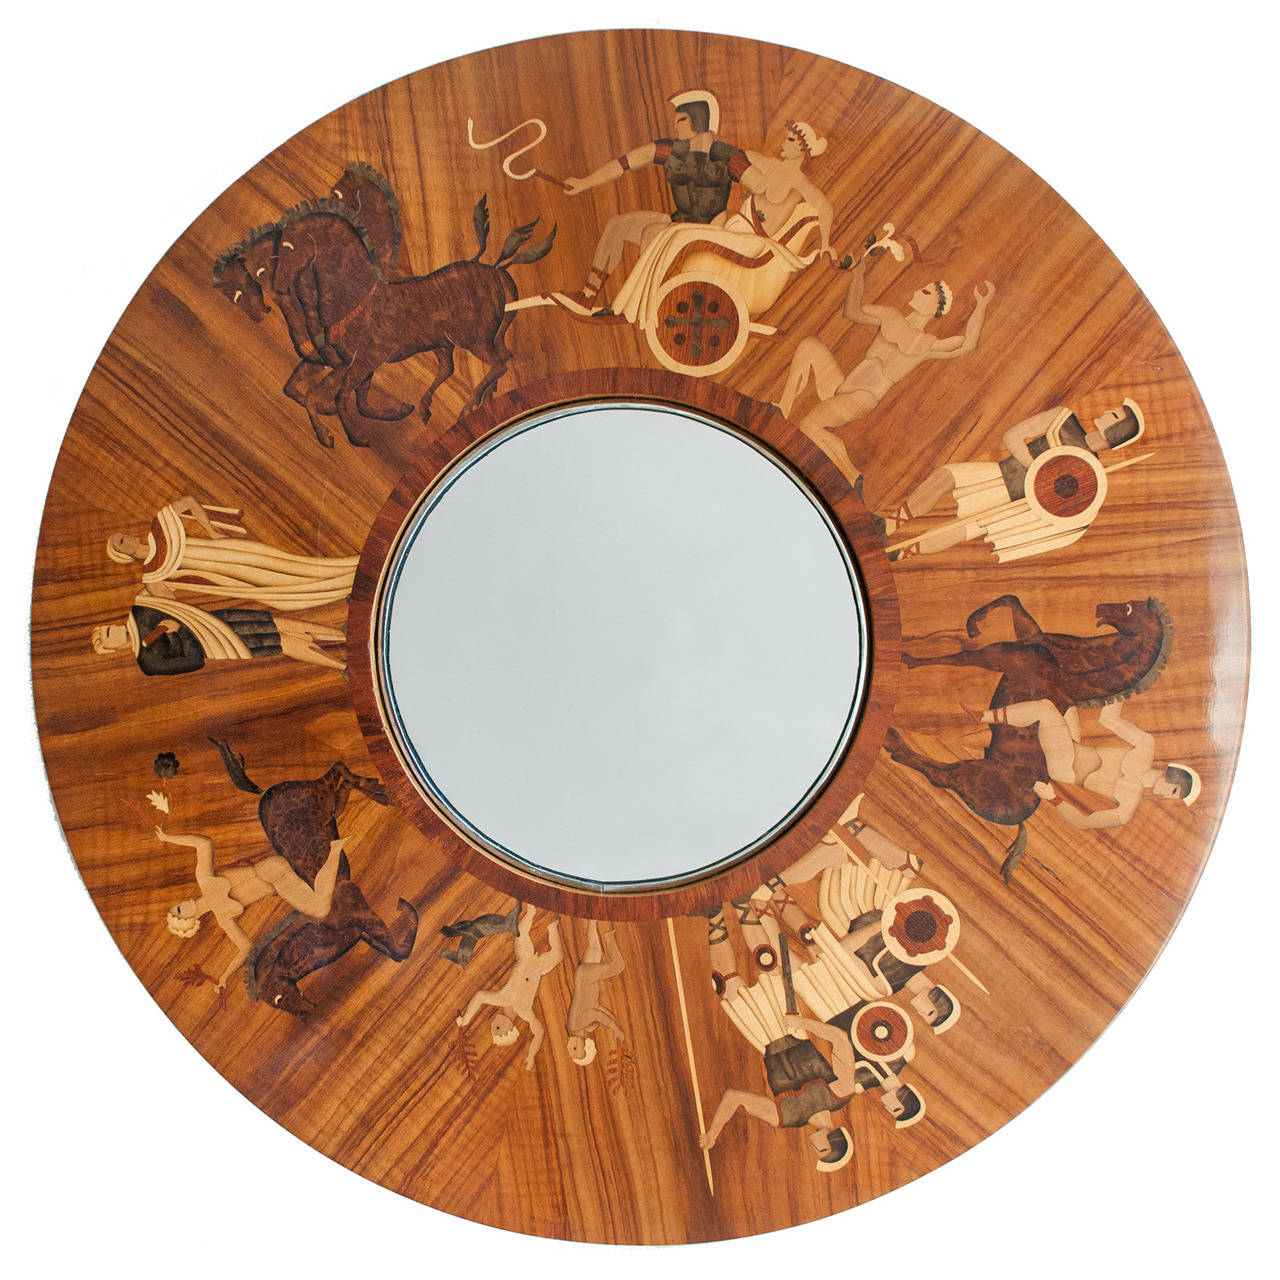 Swedish Art Deco Marquetry Wall Mirror by Mjolby Intarsia